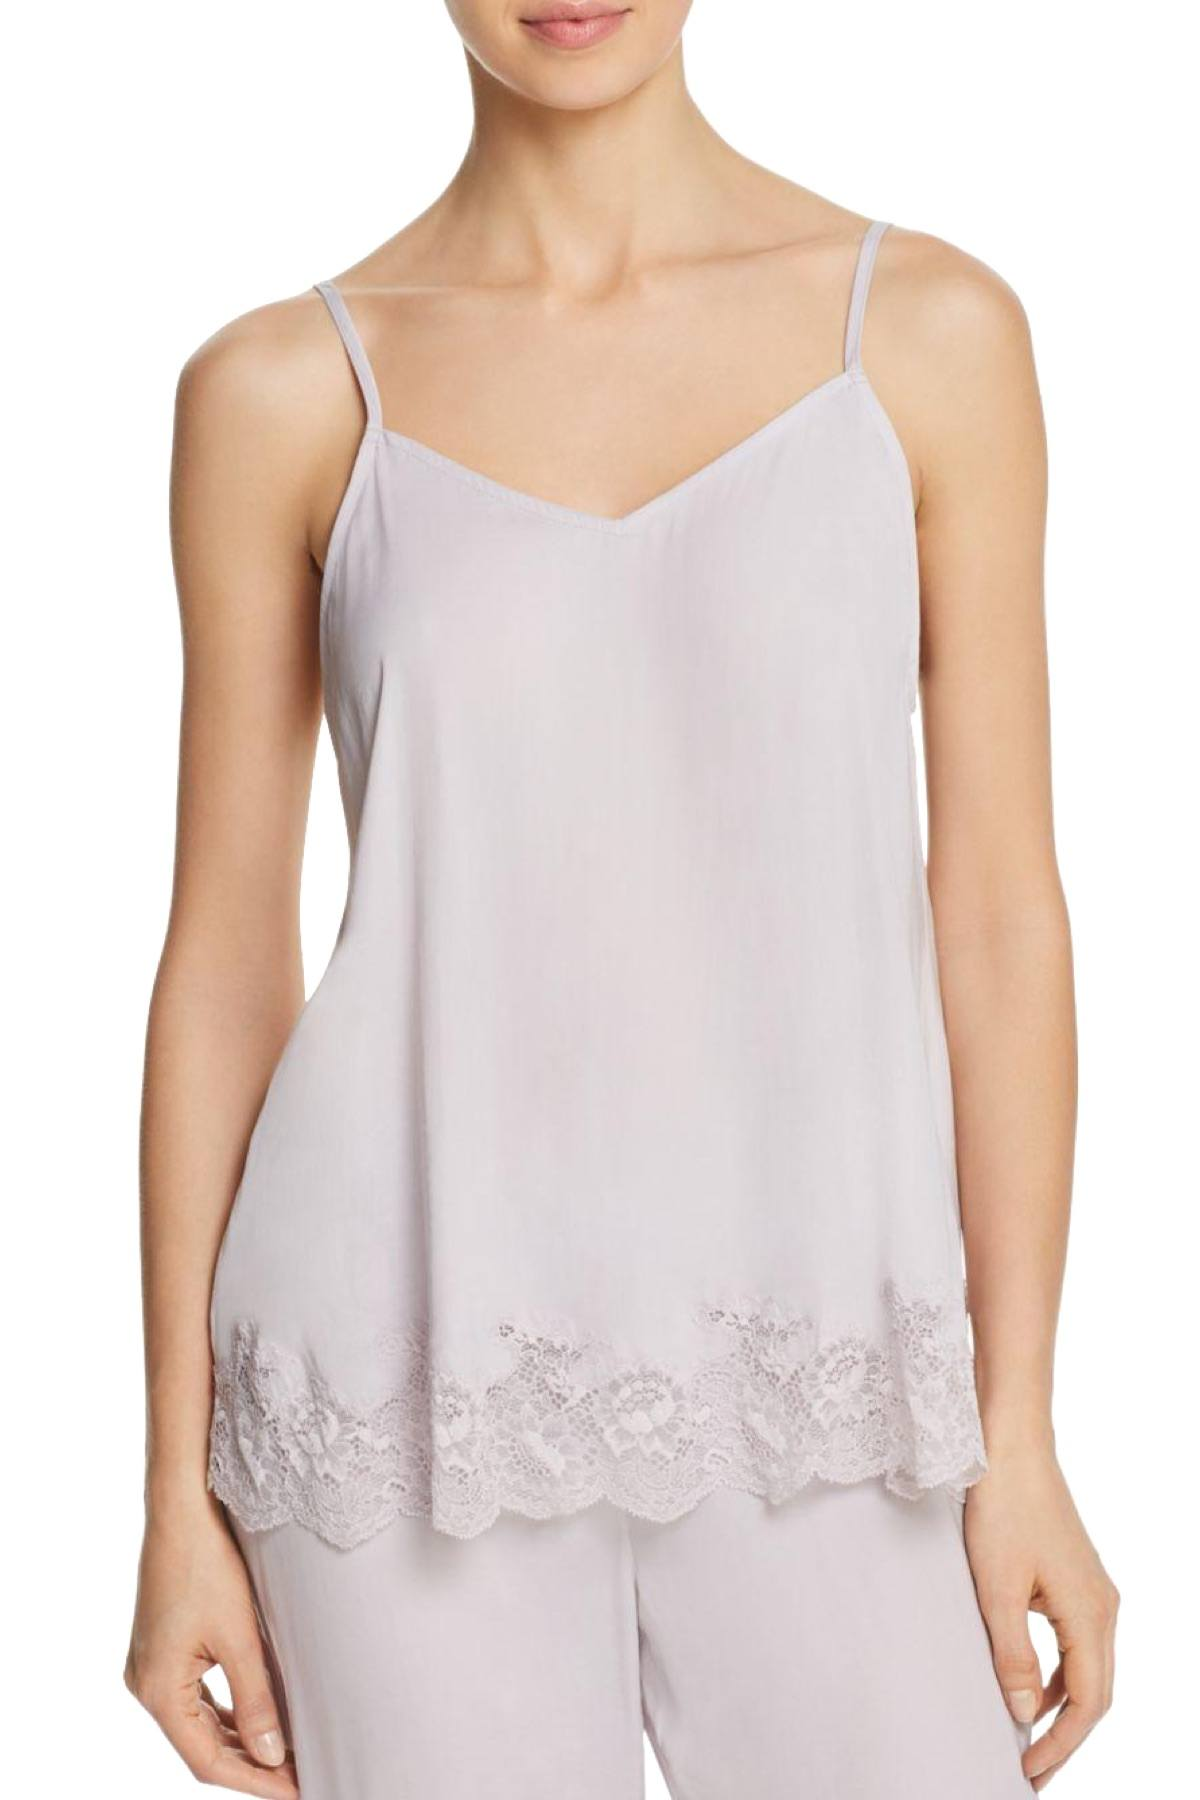 Josie by Natori Fairytale Camisole in Lilac